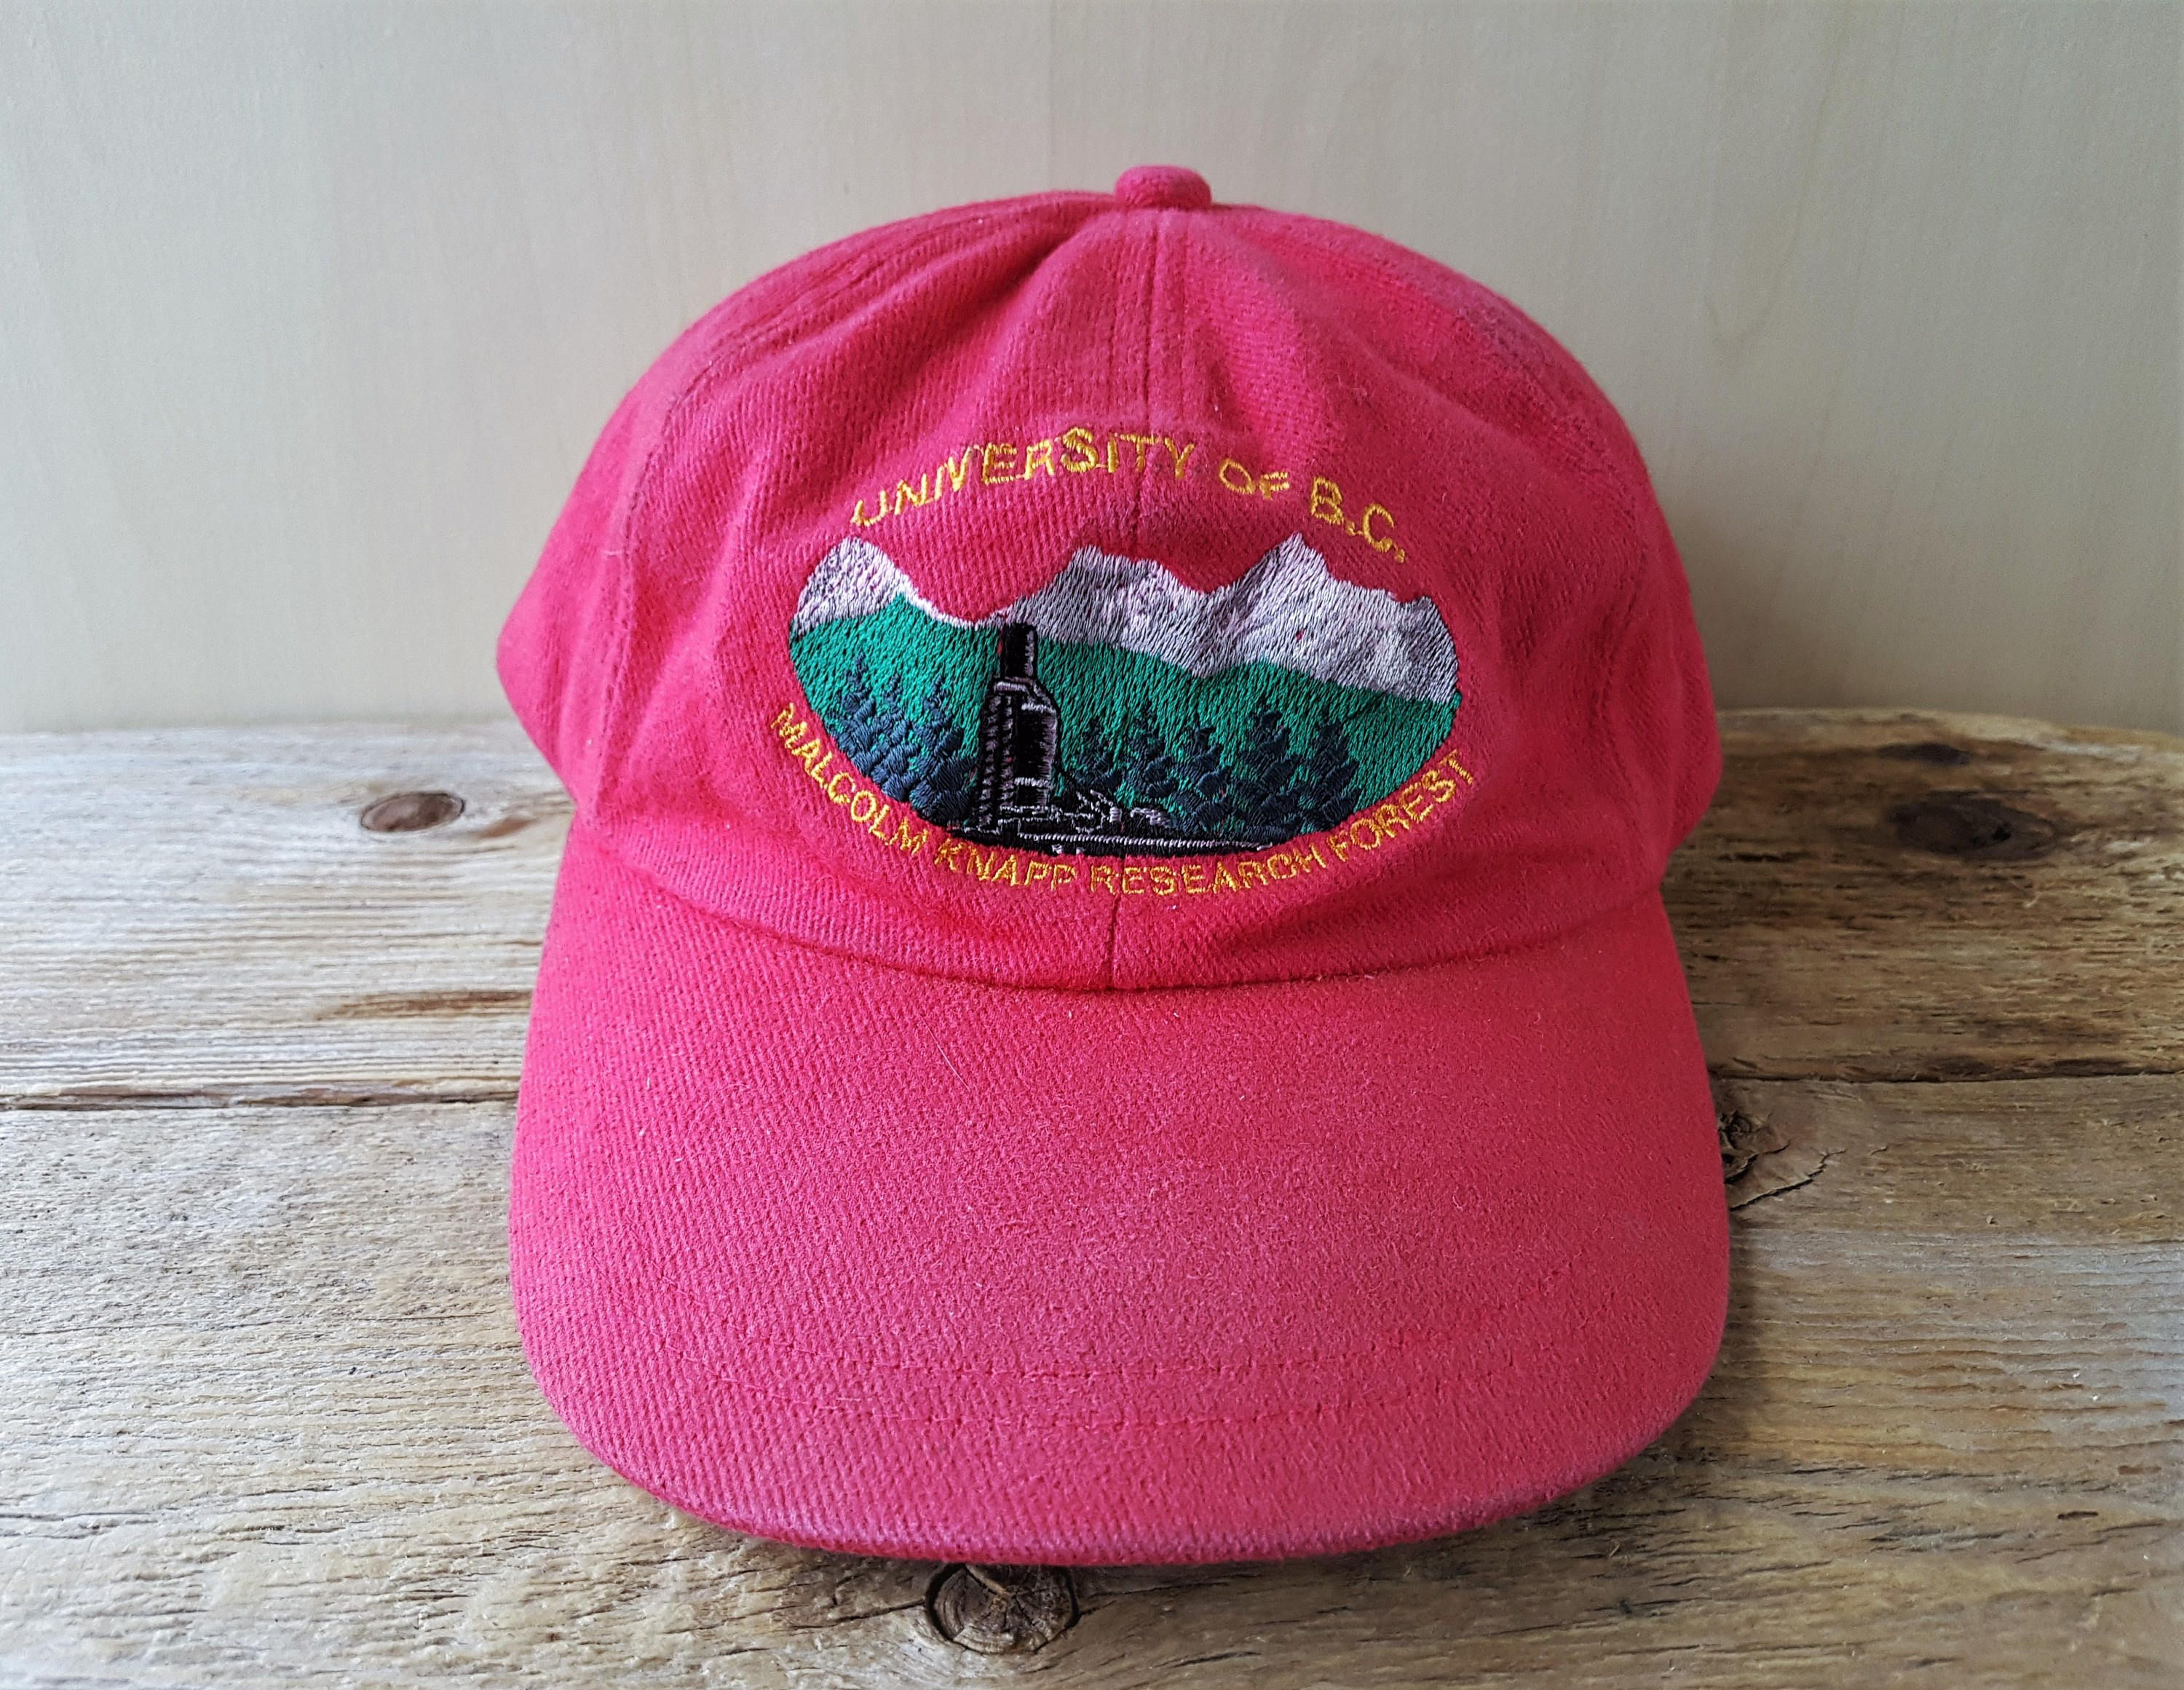 University Of Bc Malcolm Knapp Research Forest Strapback Hat Vintage 90s Unstructured Baseball Cap Ubc Mkrf Minimal Red Fo In 2020 Hats Vintage Strapback Hats Ball Cap